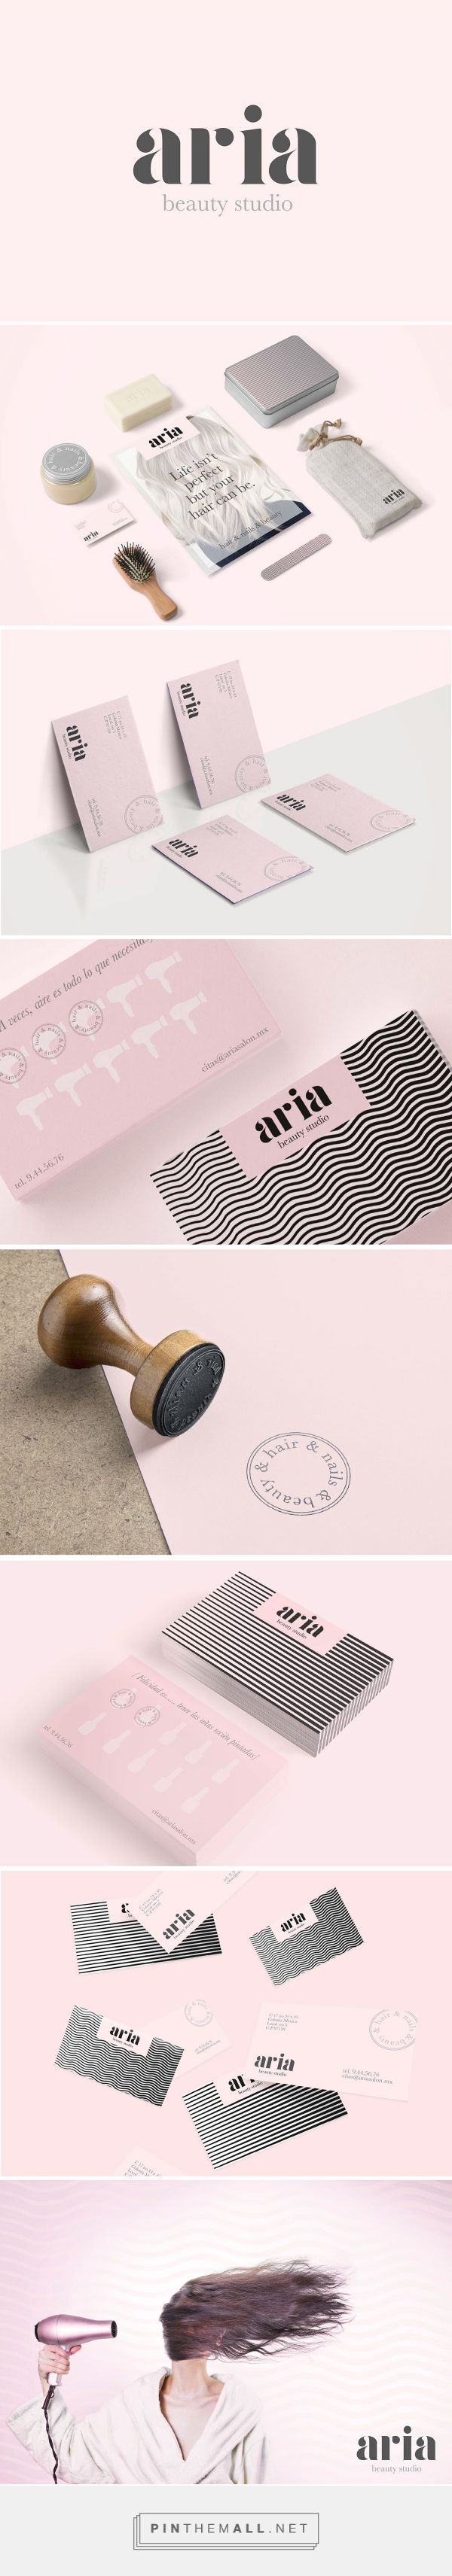 Aria Beauty Salon Branding by Puro Diseno